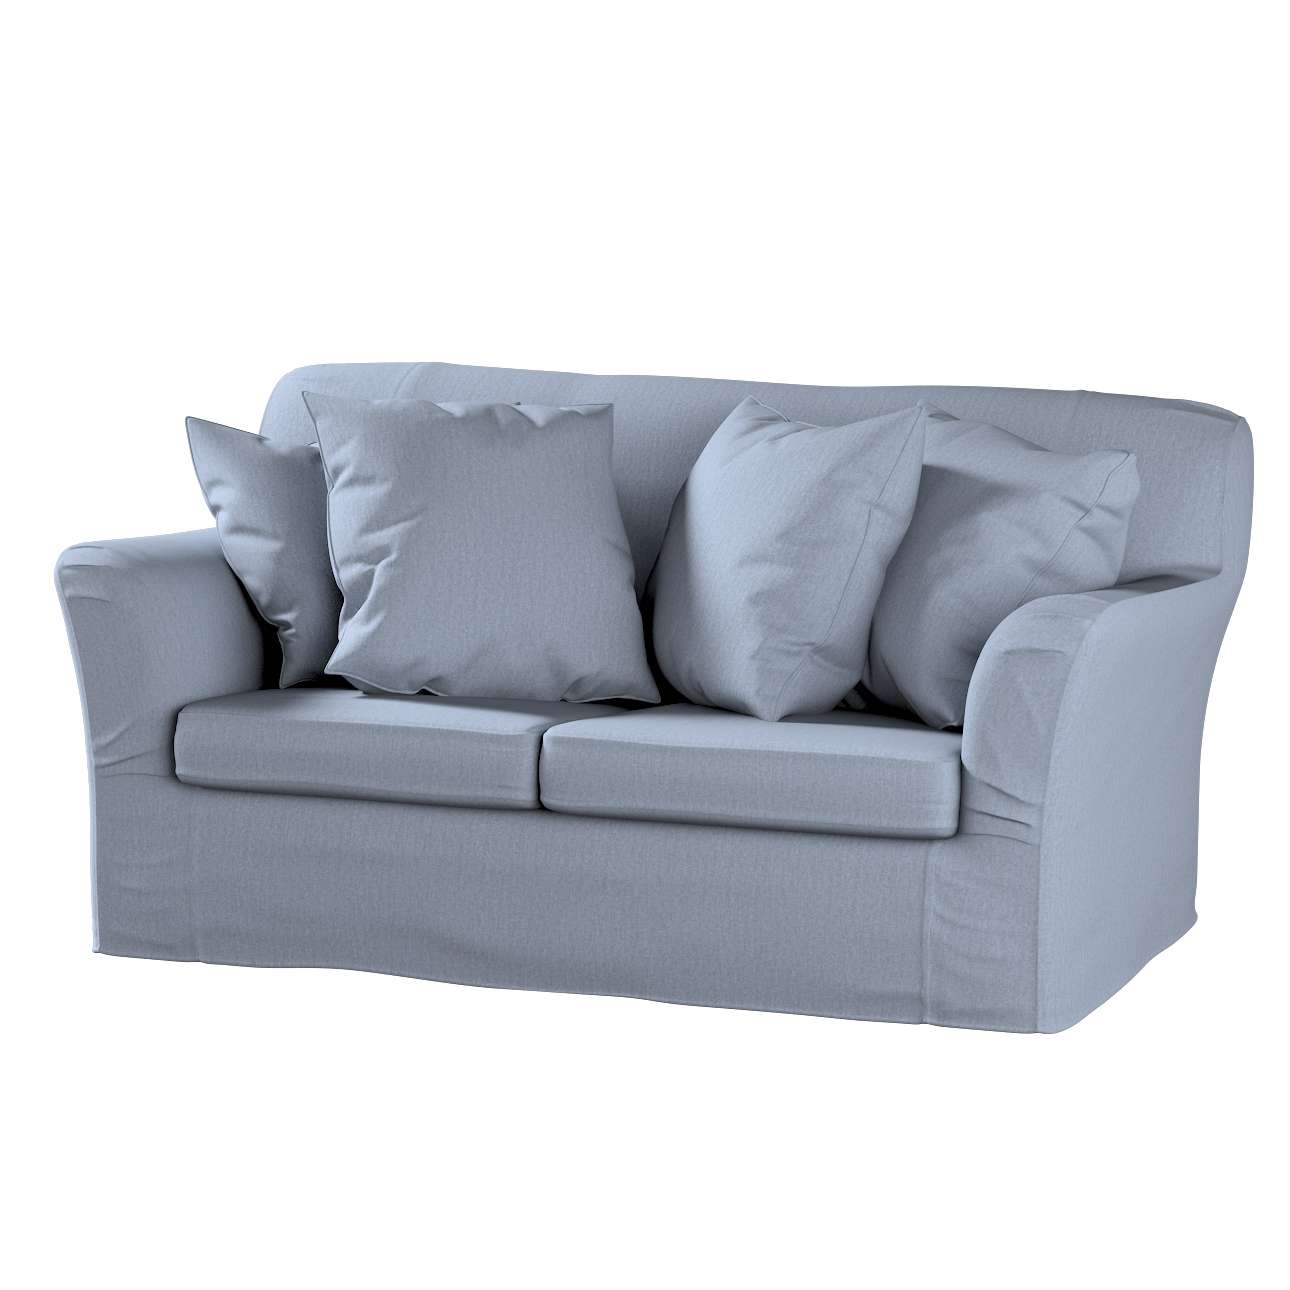 Tomelilla 2-seater sofa cover Tomelilla 2-seat sofa in collection Chenille, fabric: 702-13